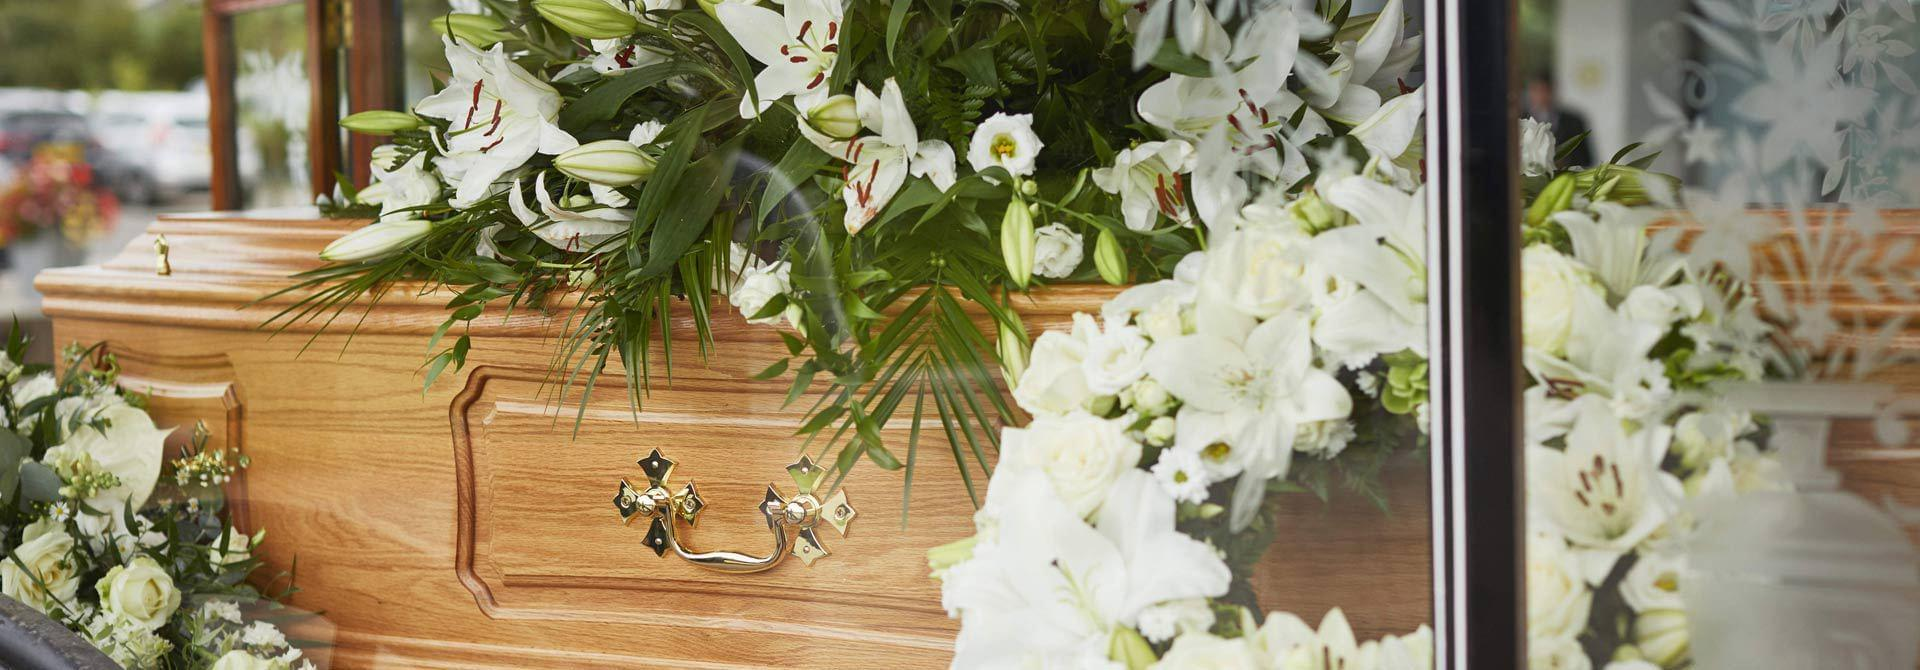 Dignity Funeral Directors and Funeral Services